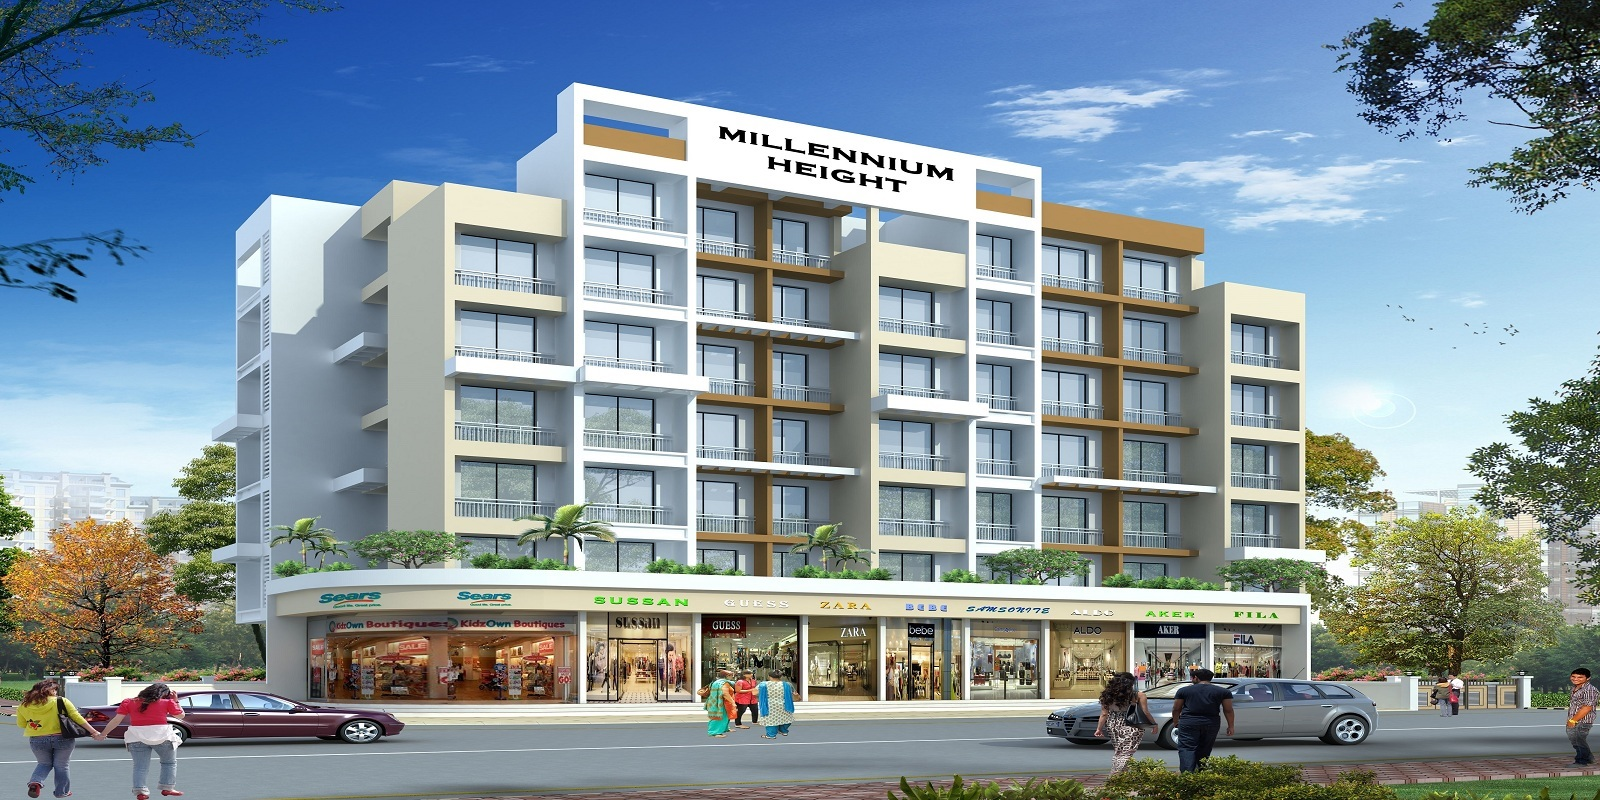 millenium height project project large image1